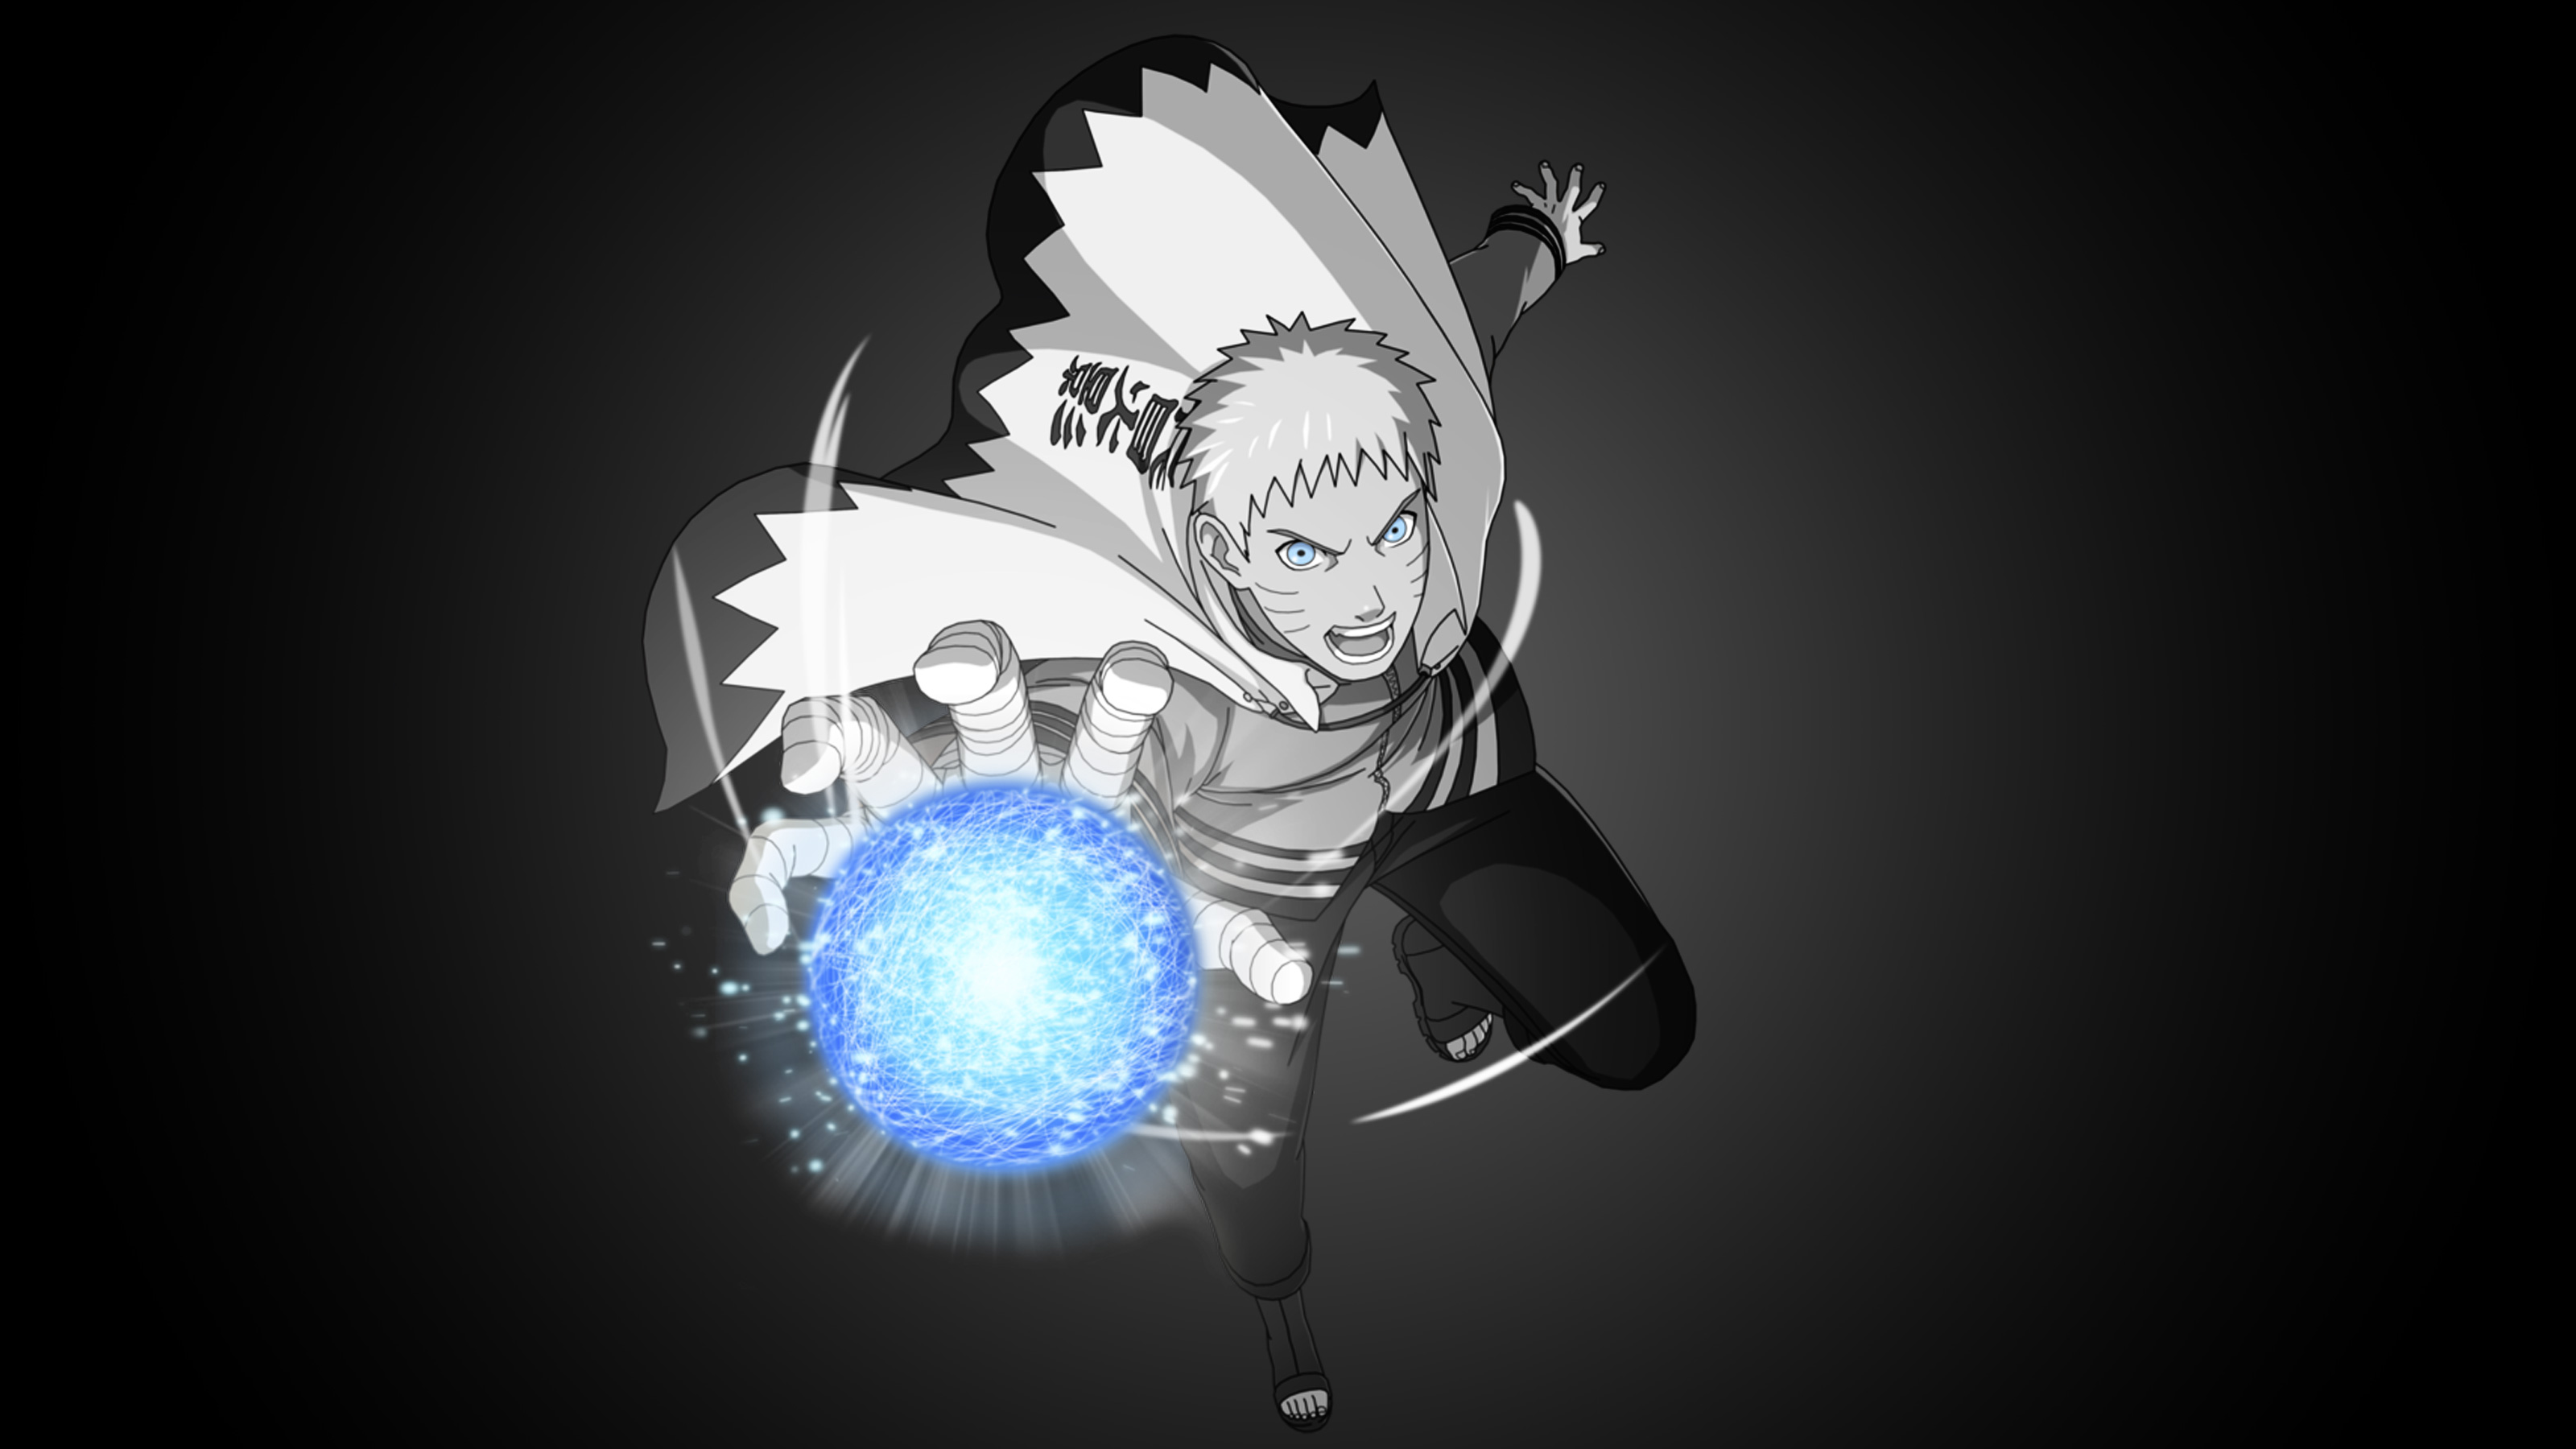 Download Wallpaper Live 3d Android Naruto Rasengan Hd Anime 4k Wallpapers Images